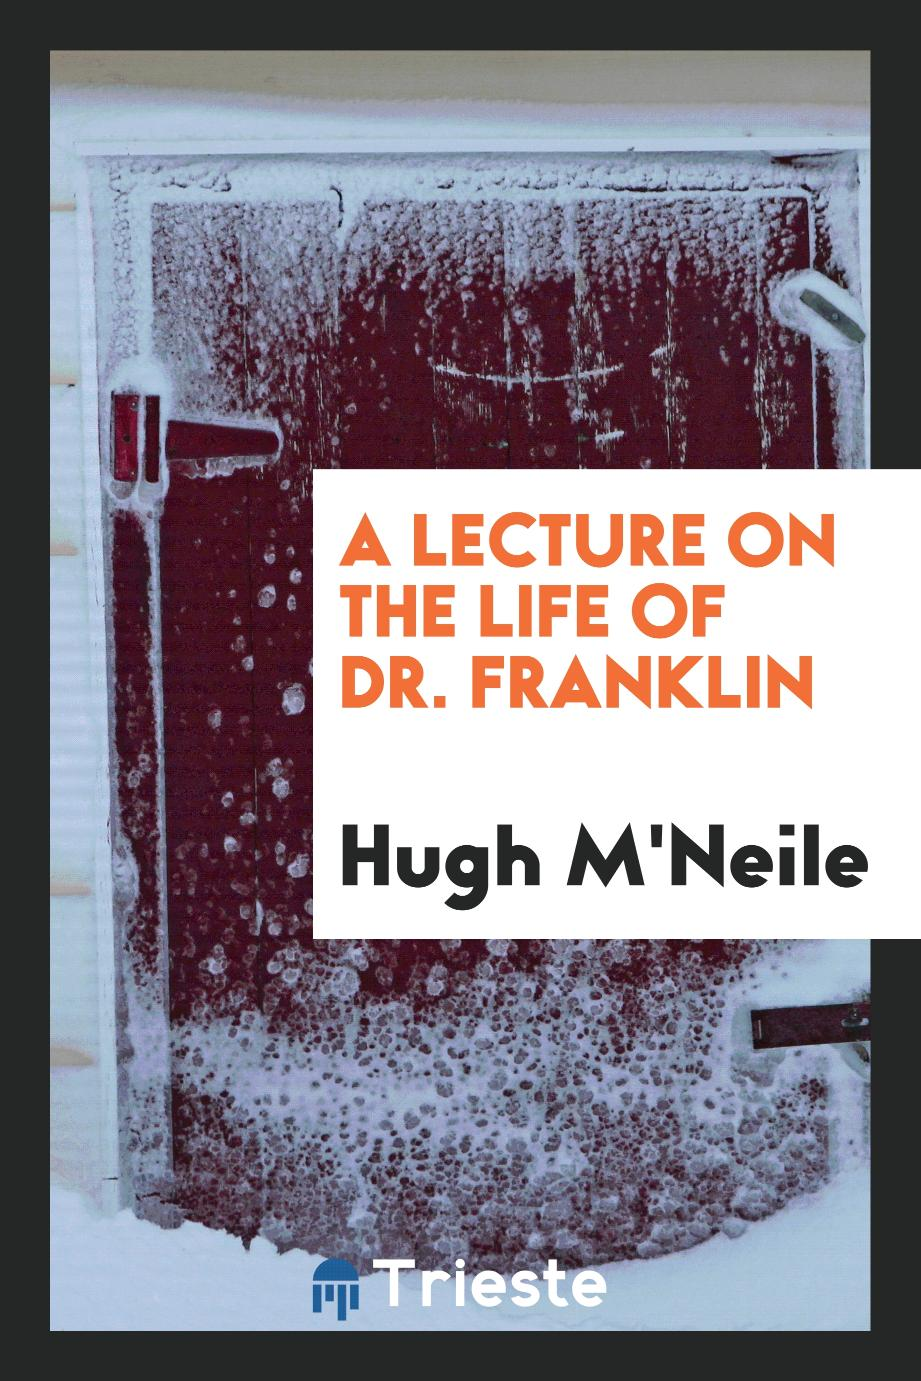 A Lecture on the Life of Dr. Franklin